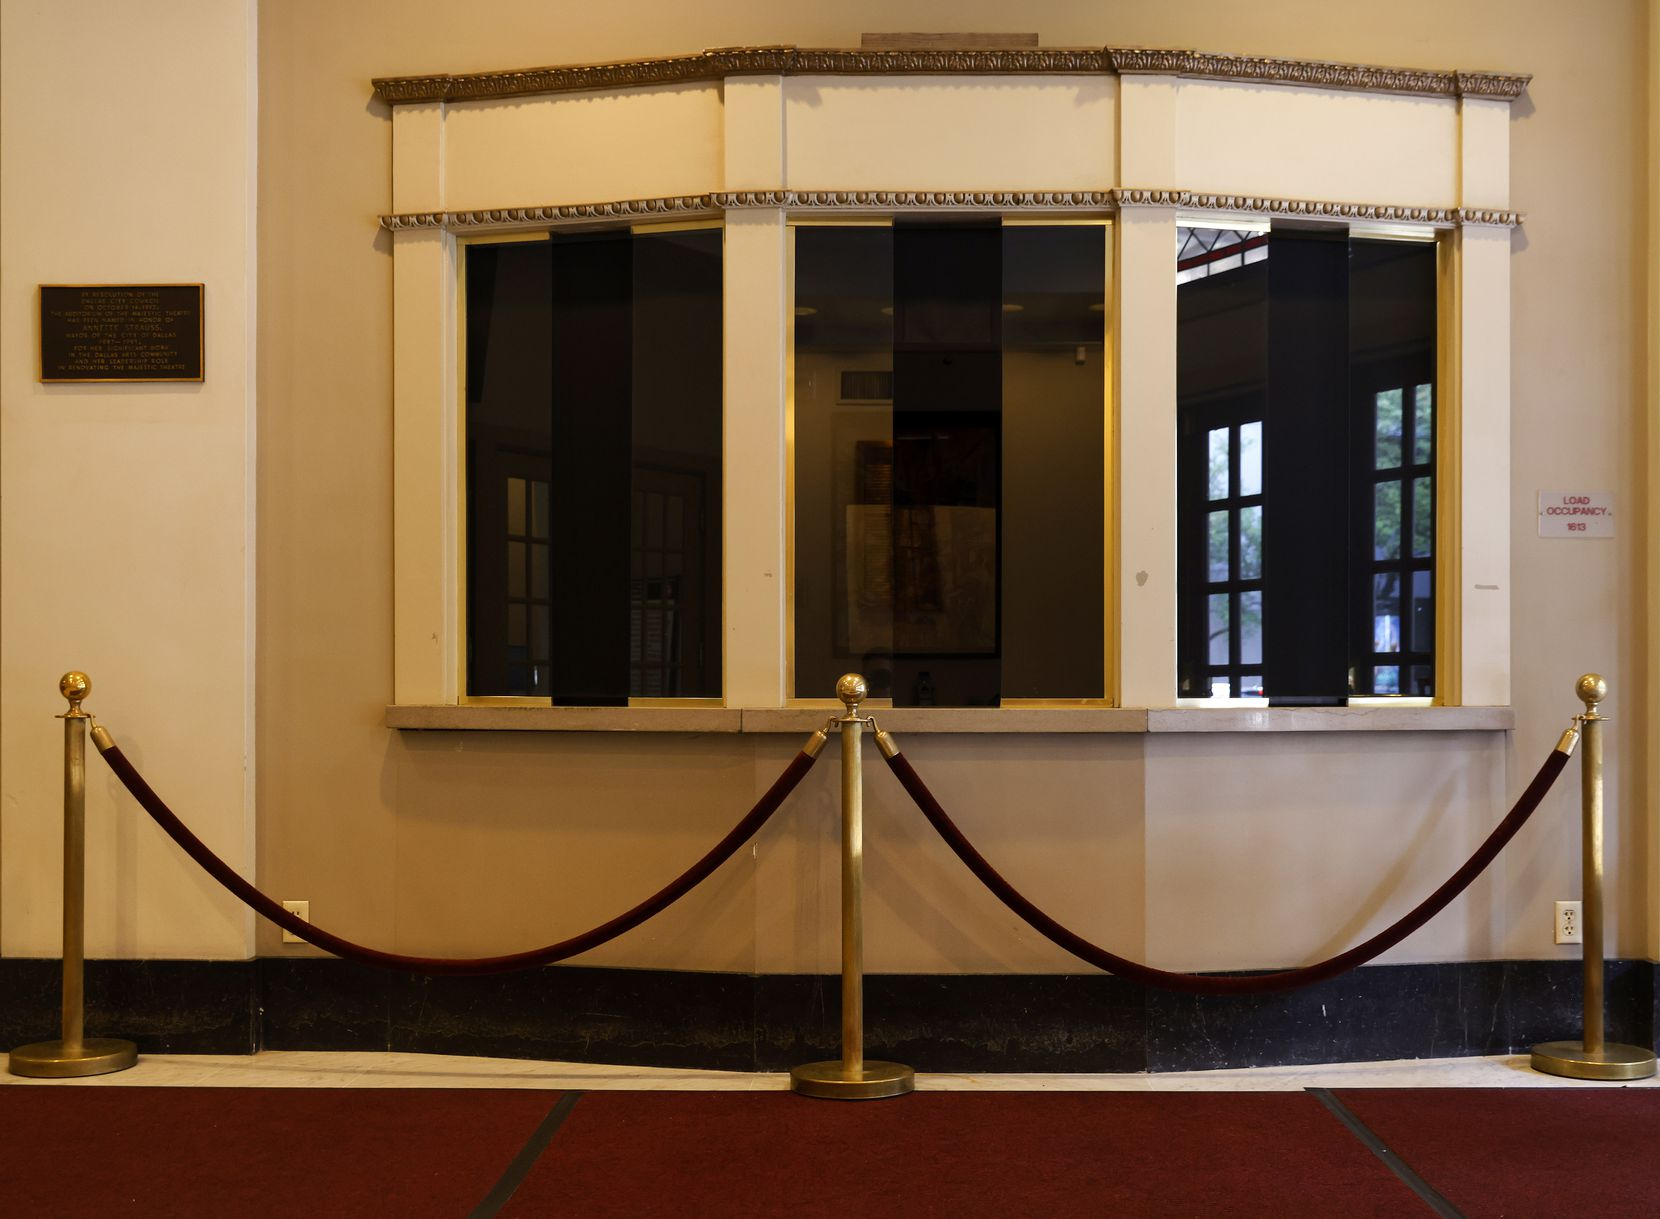 Ticket windows were dark Thursday as the Majestic remained closed.